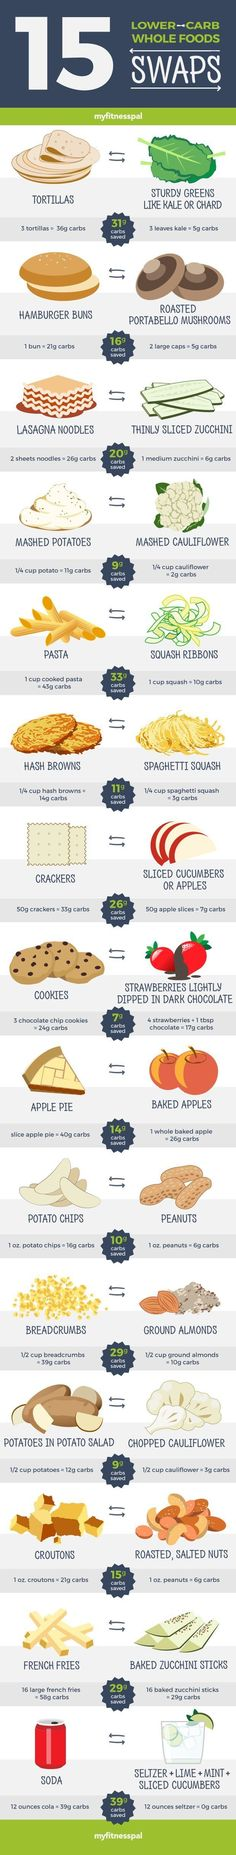 15 Lower-Carb Whole Food Swaps